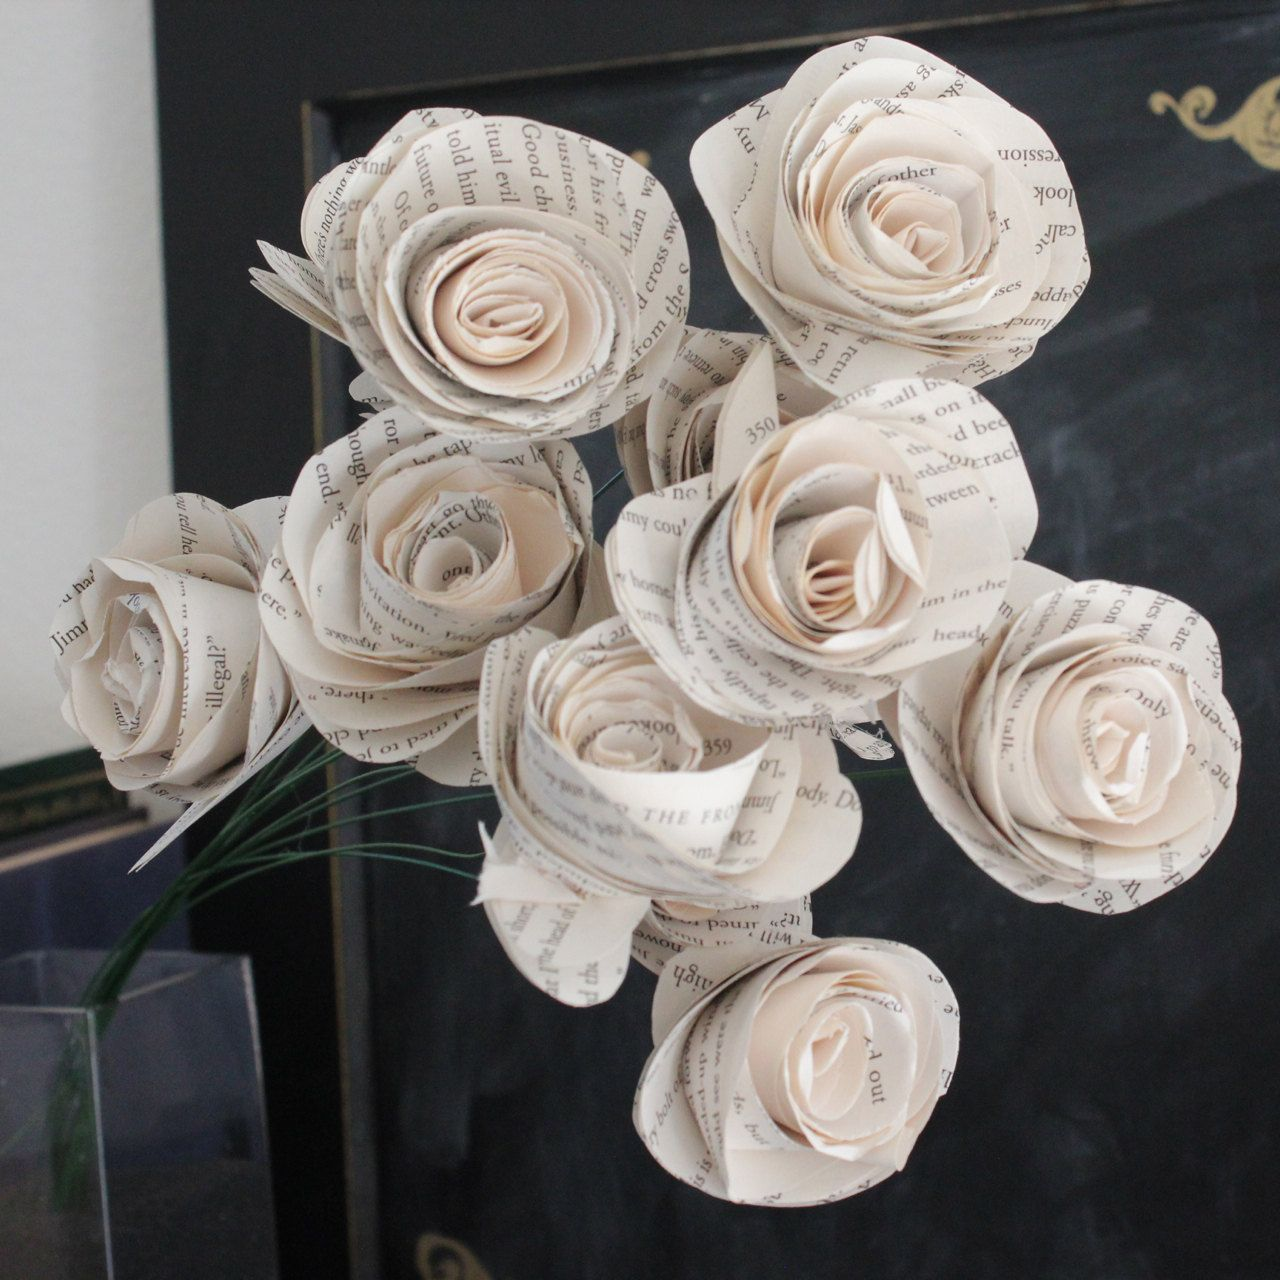 Book Page Roses 1 Dozen Large Paper Roses For Wedding Or Home